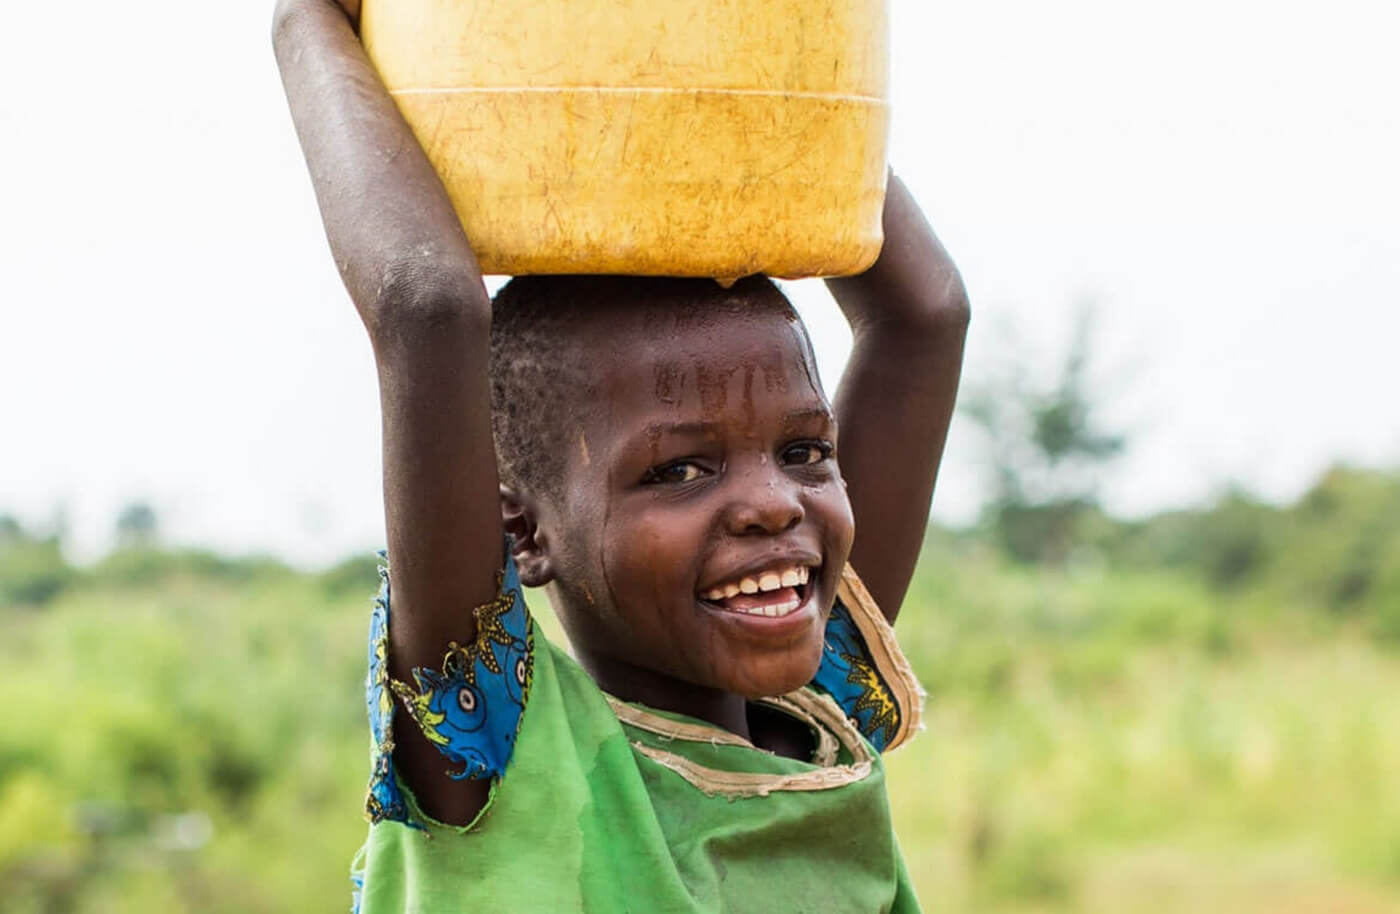 powerful imagery nonprofit website charity water